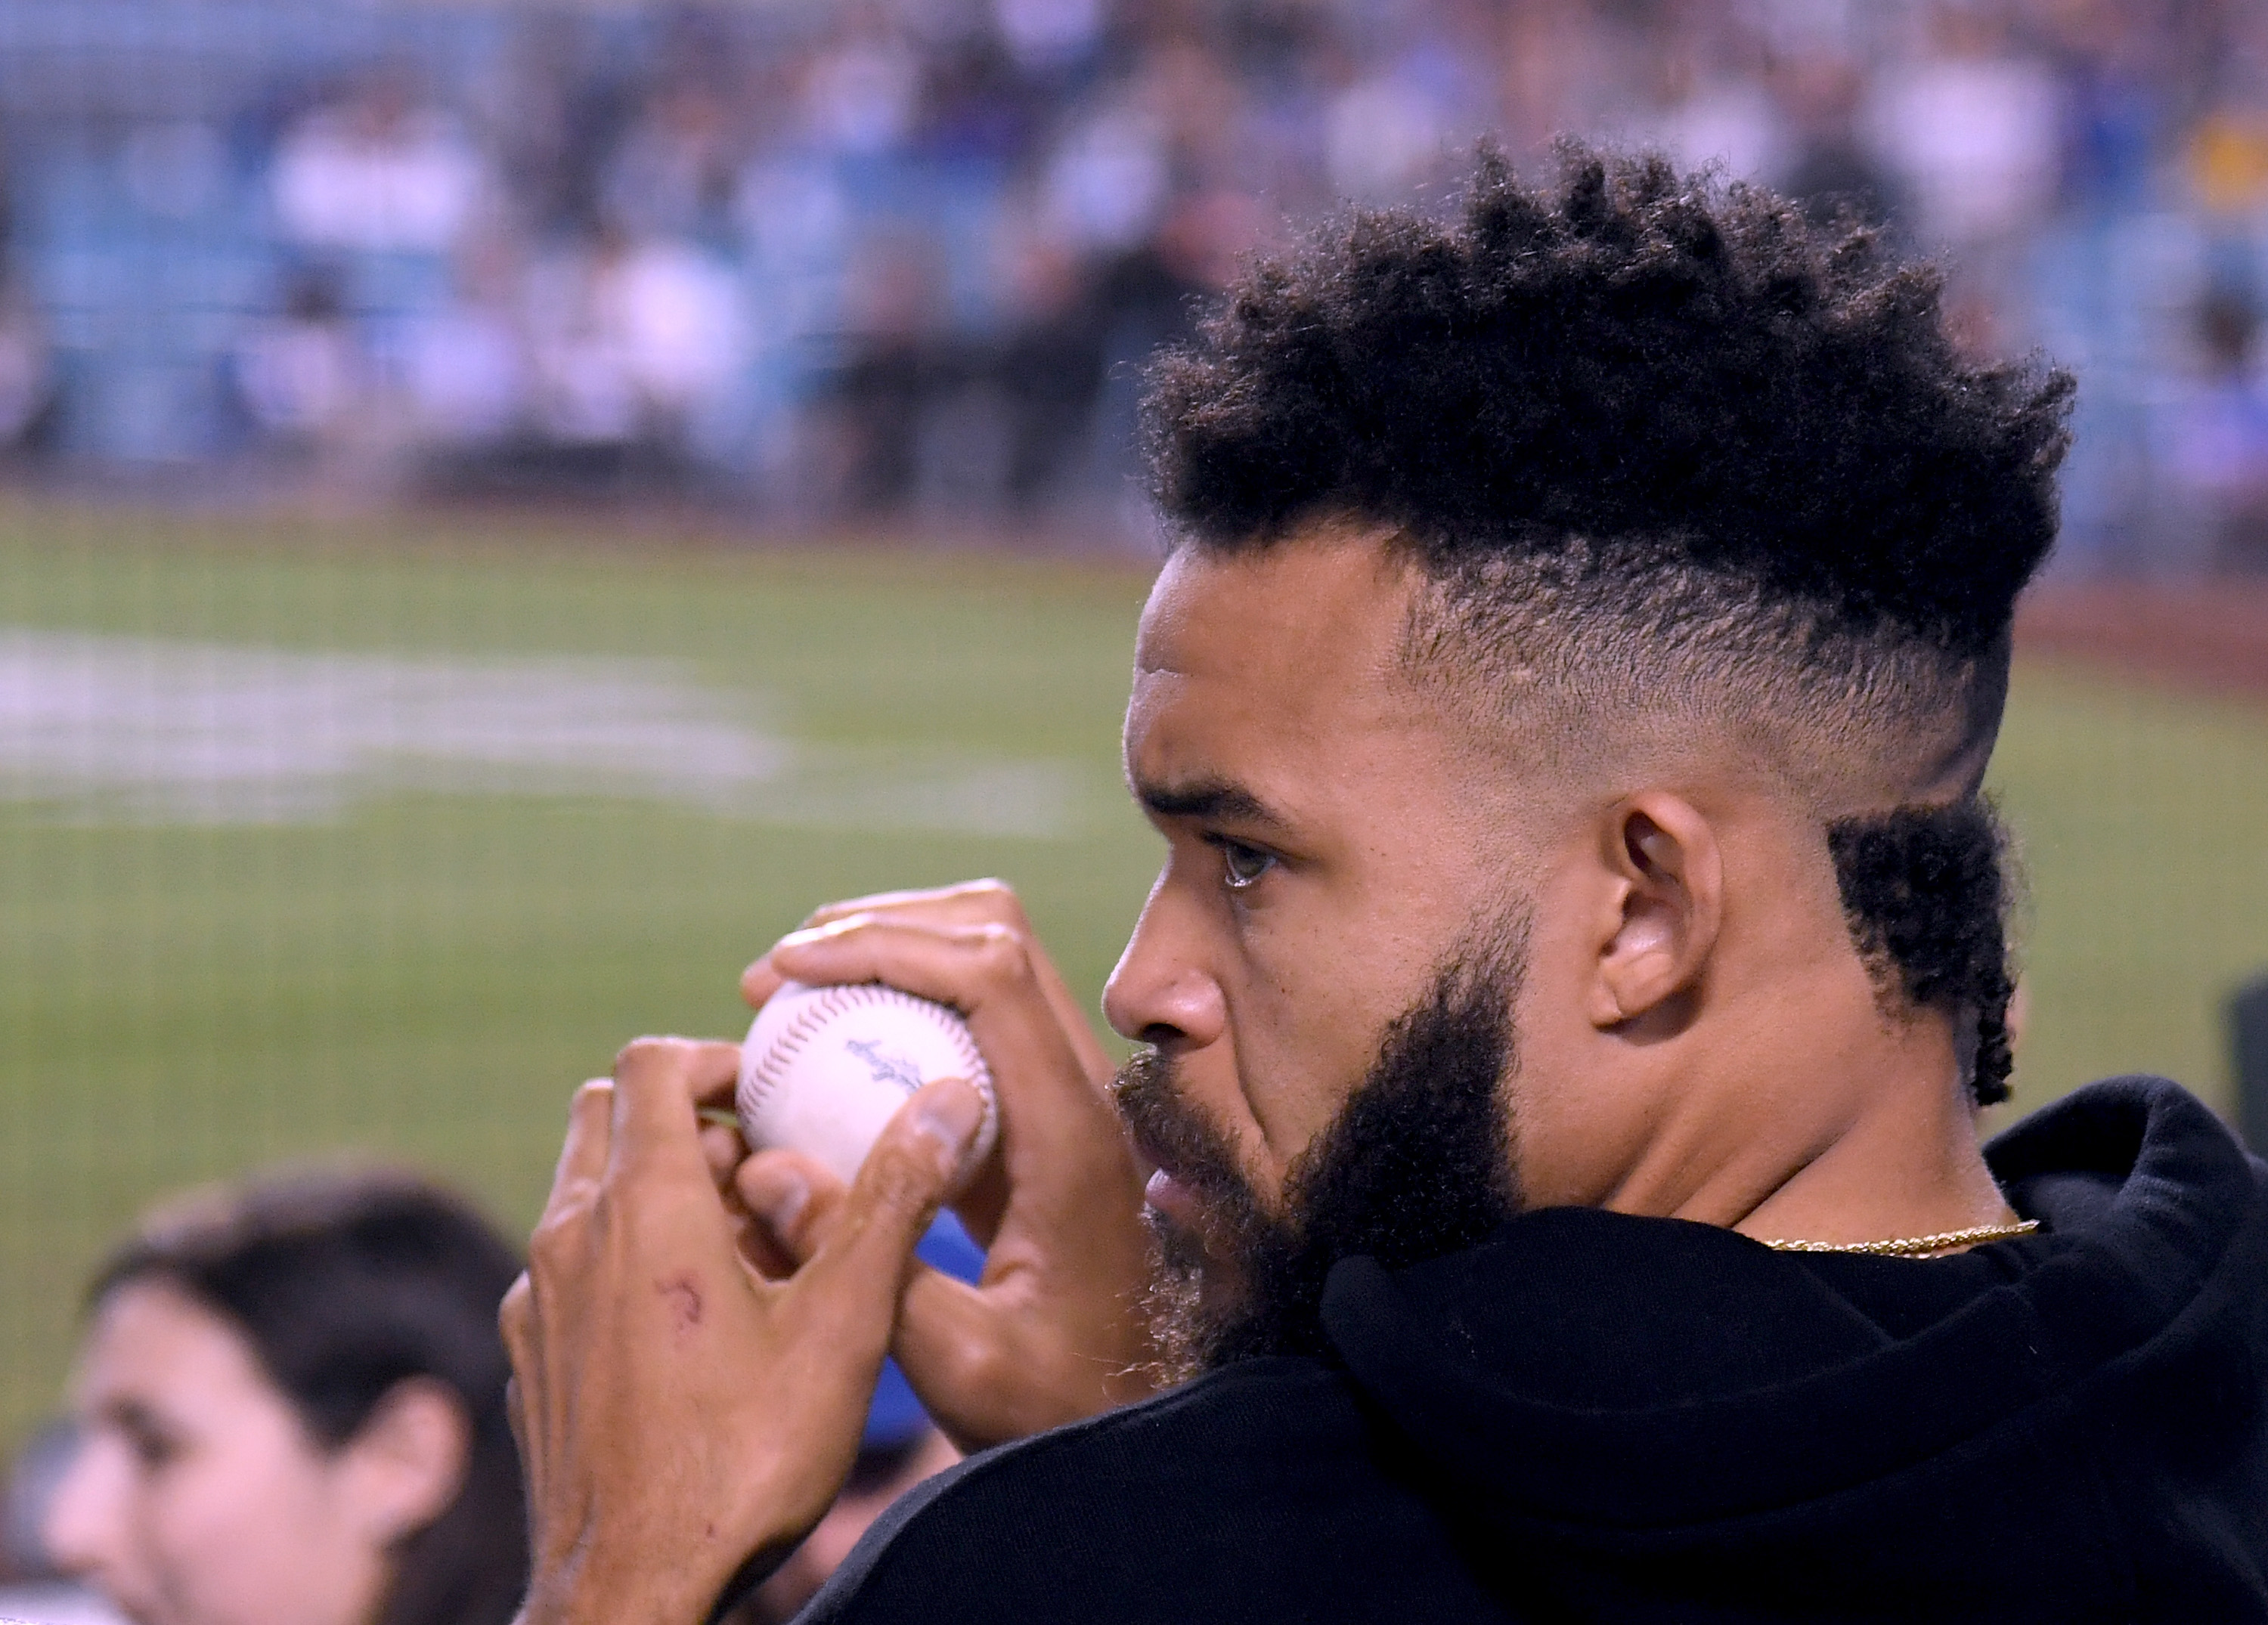 New Los Angeles Laker, JaVale McGee, takes in the game between the Colorado Rockies and the Los Angeles Dodgers at Dodger Stadium on September 19, 2018 in Los Angeles, California. (Photo by Harry How/Getty Images)